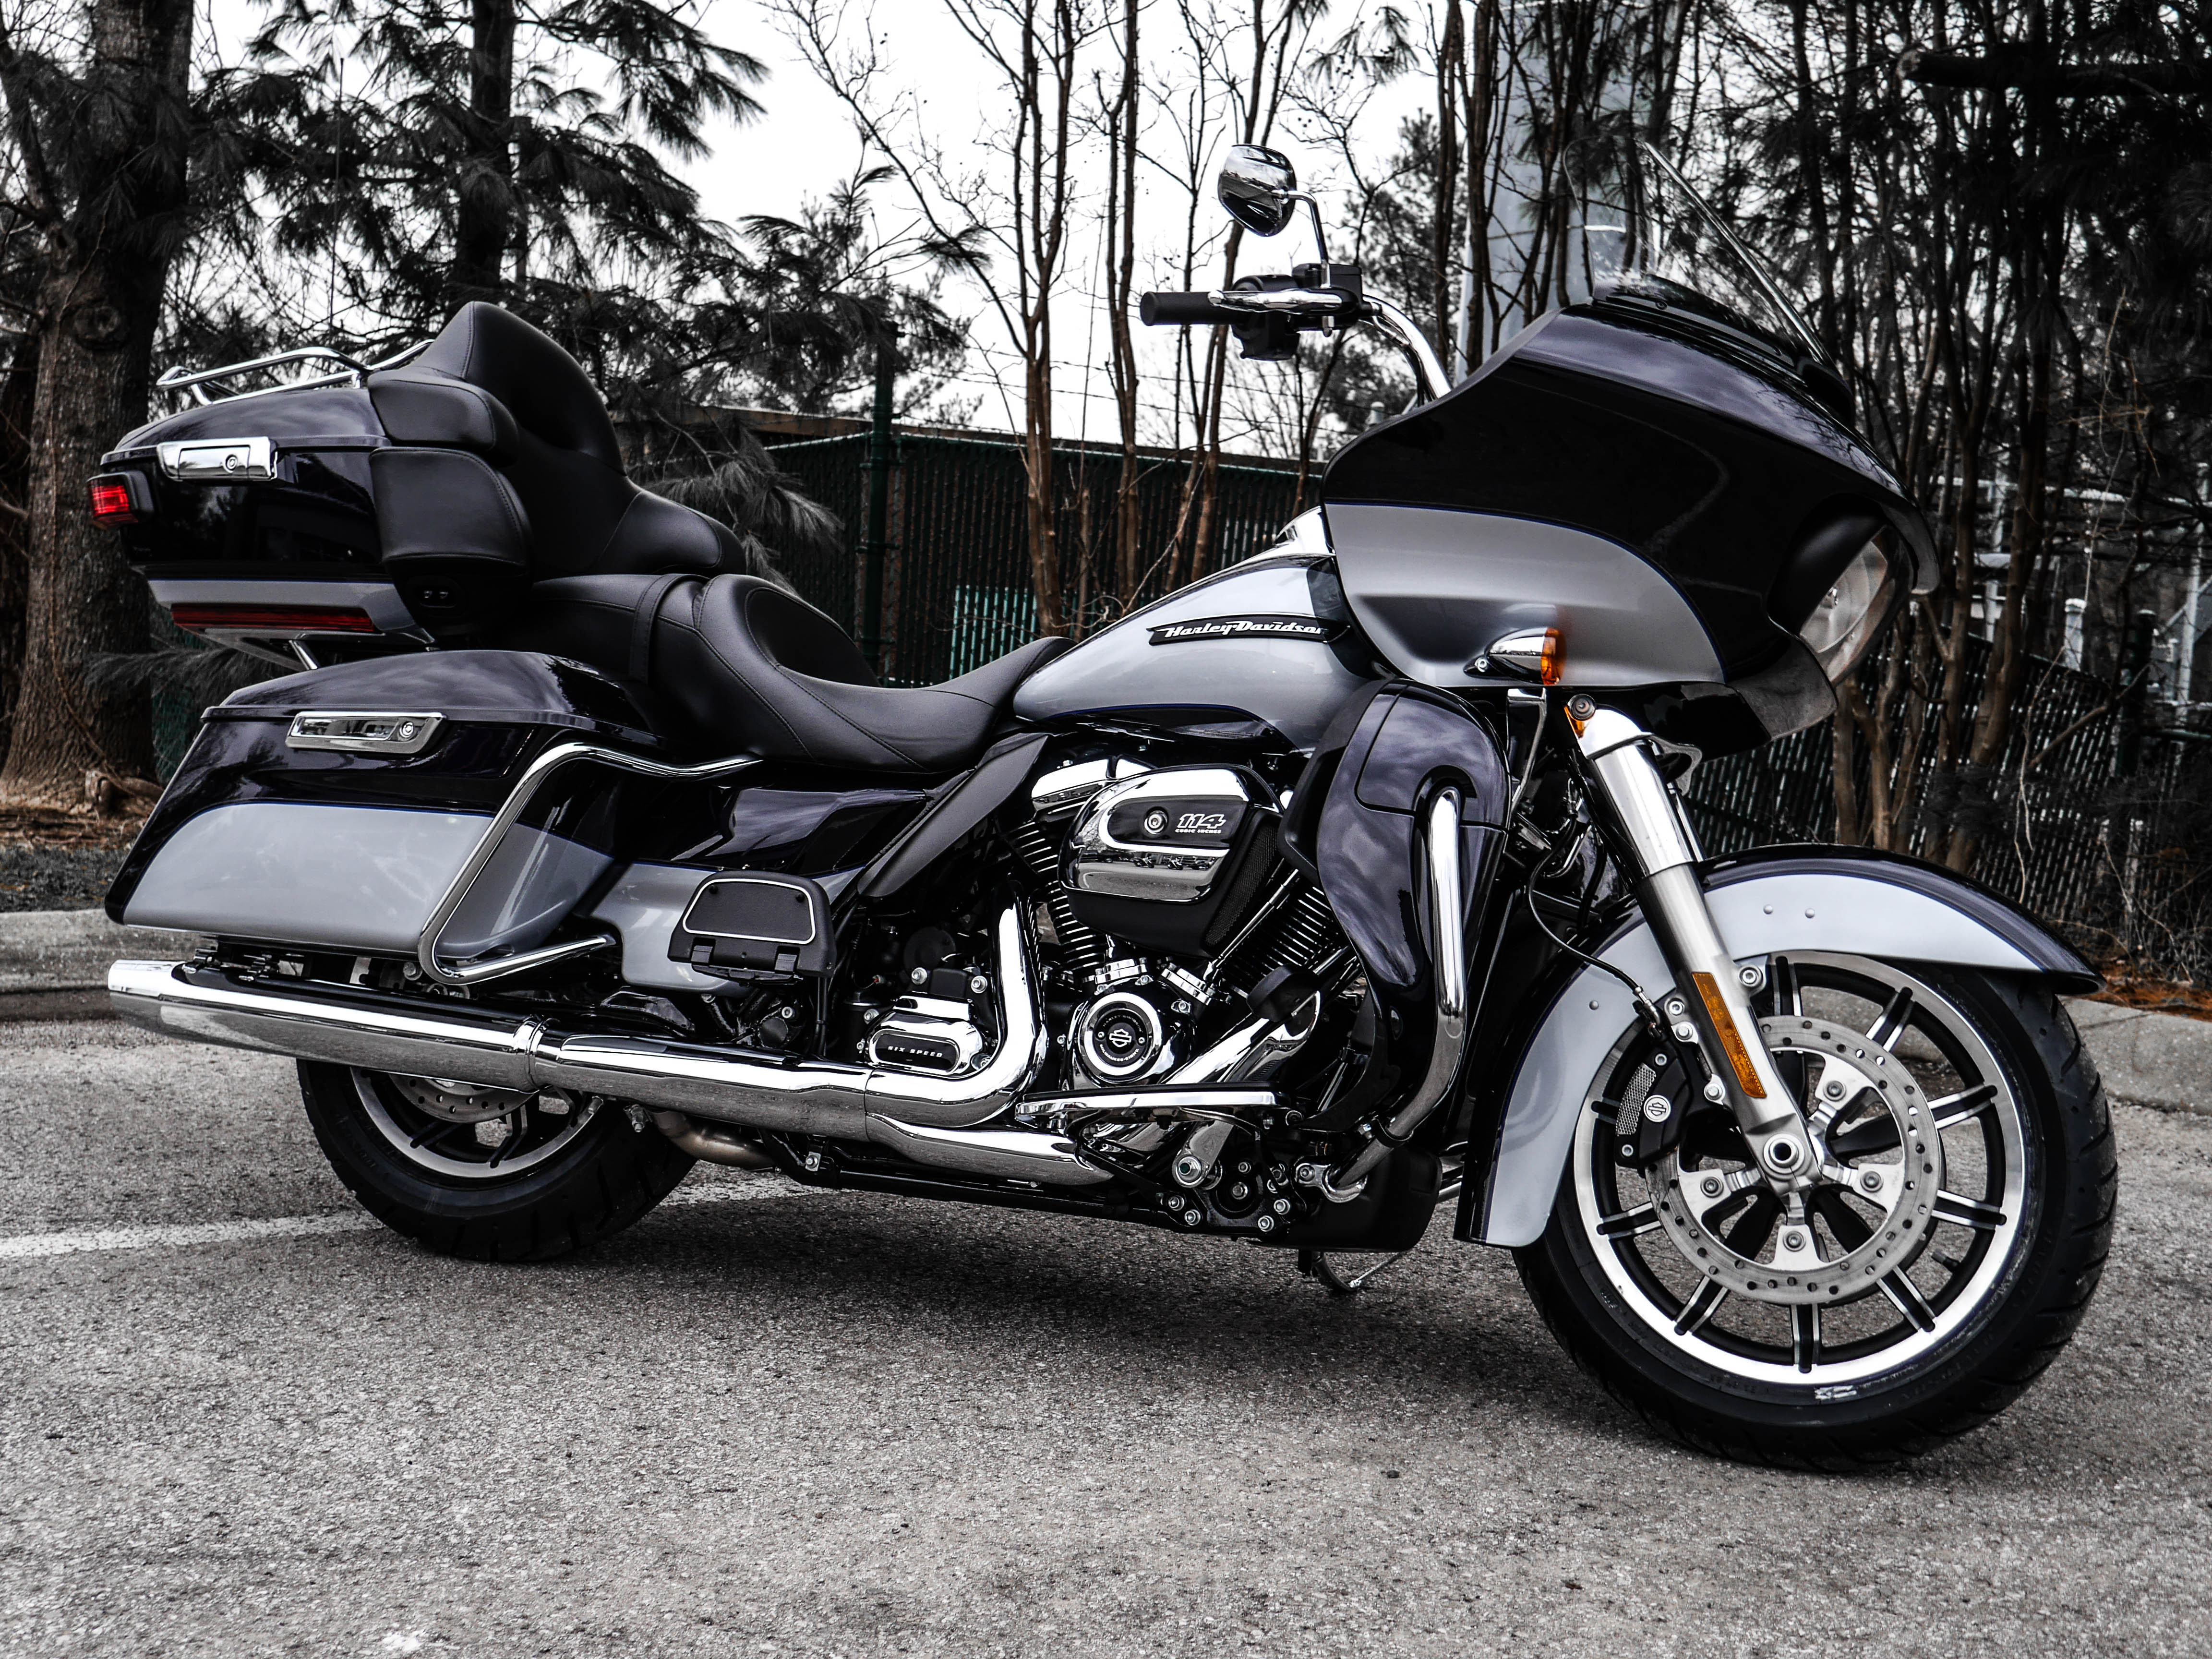 New 2019 Harley-Davidson Touring Road Glide Ultra in ...